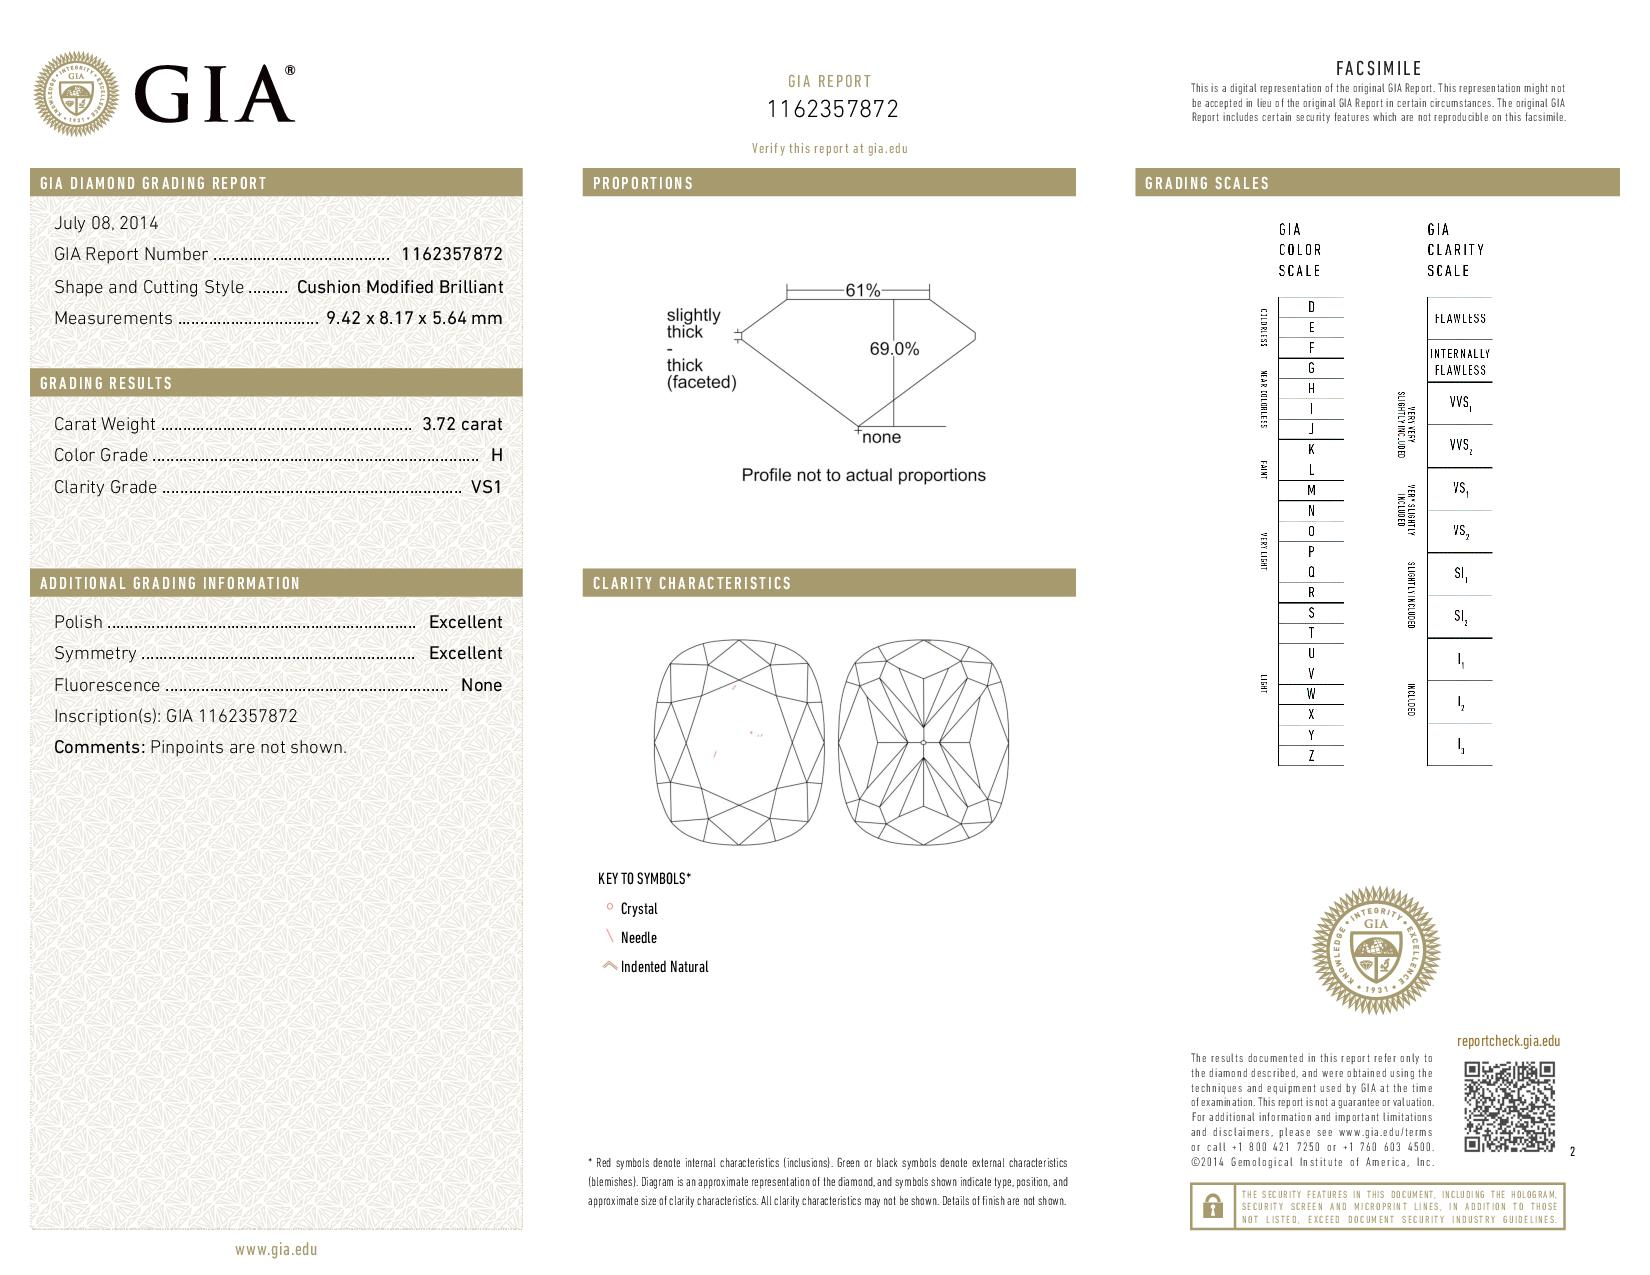 This is a 3.72 carat cushion shape, H color, VS1 clarity natural diamond accompanied by a GIA grading report.